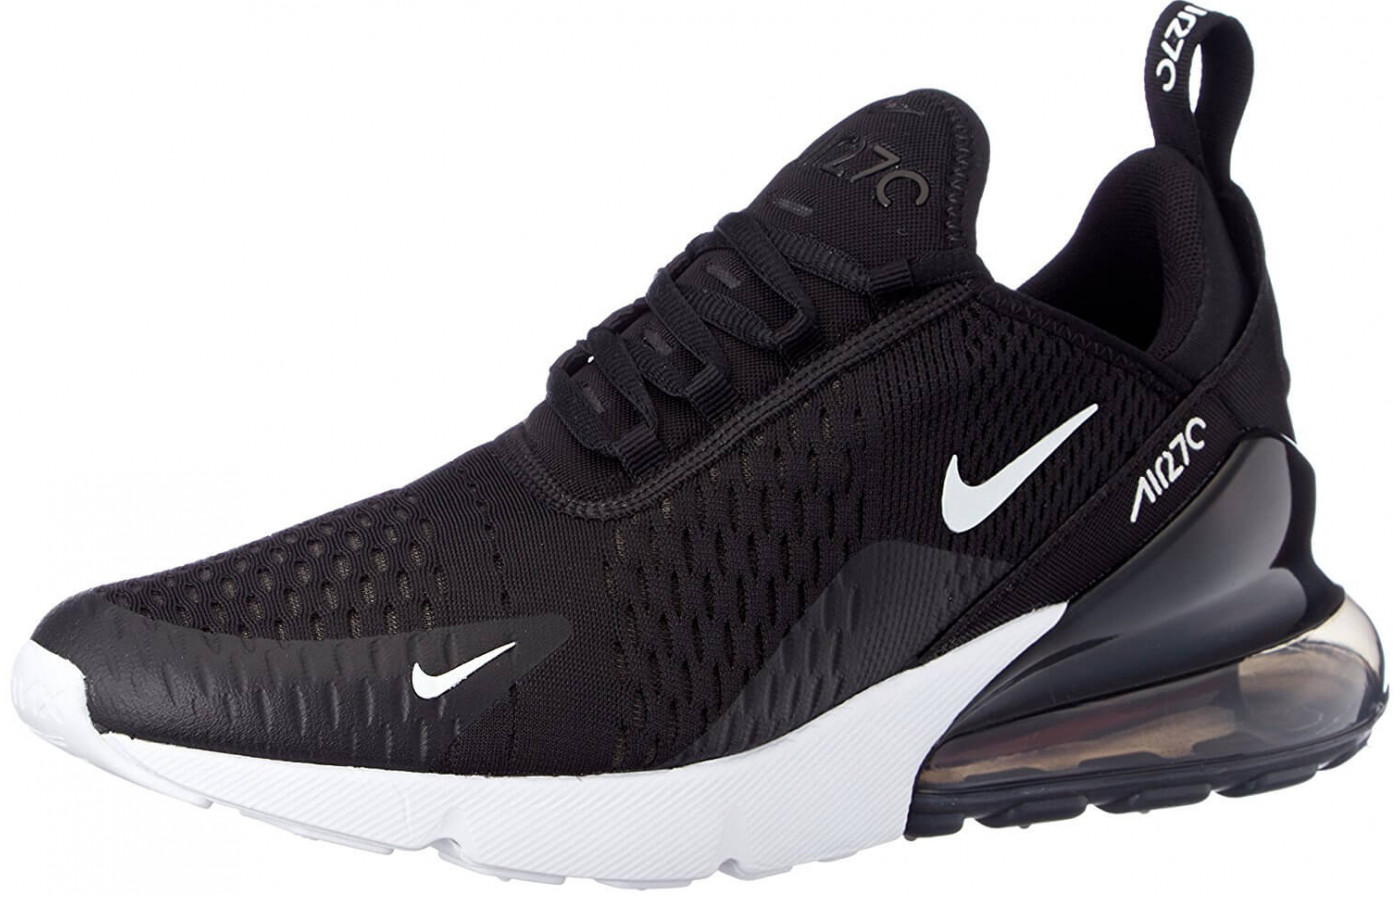 7c152a44 Nike Air Max 270. Mesh upper and 270 degrees of Air ...